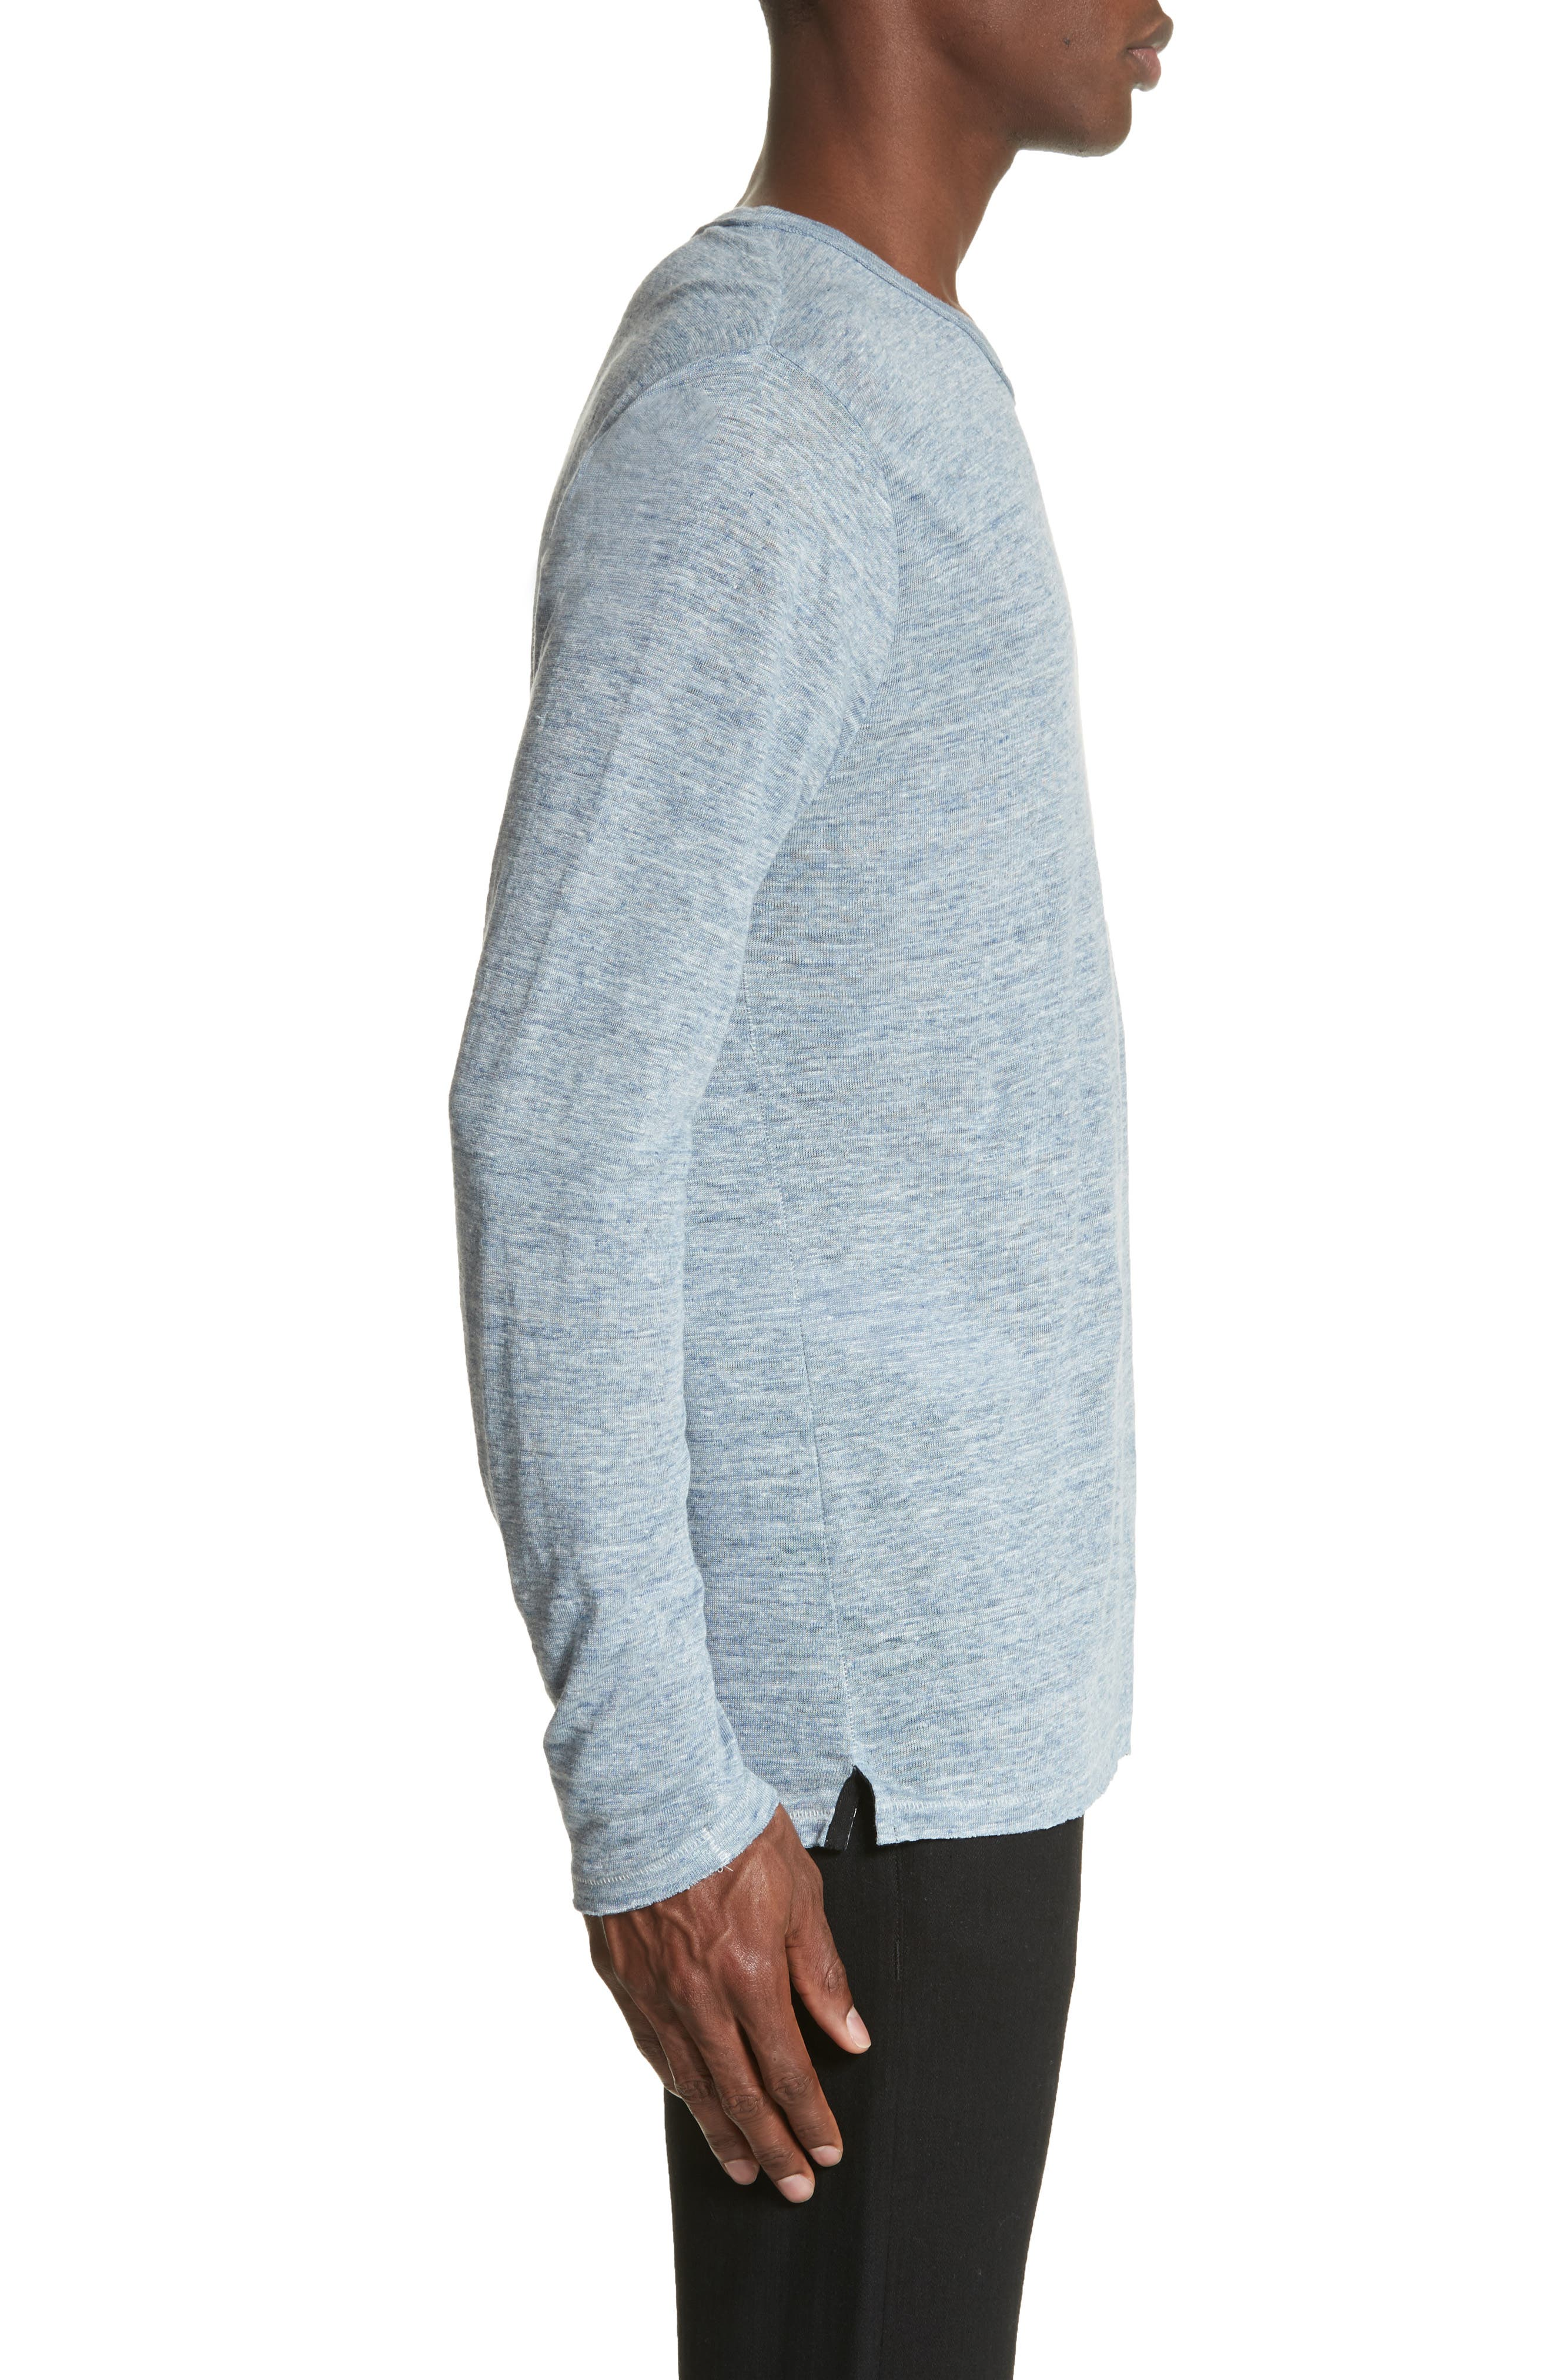 Owen Linen Long Sleeve T-Shirt,                             Alternate thumbnail 9, color,